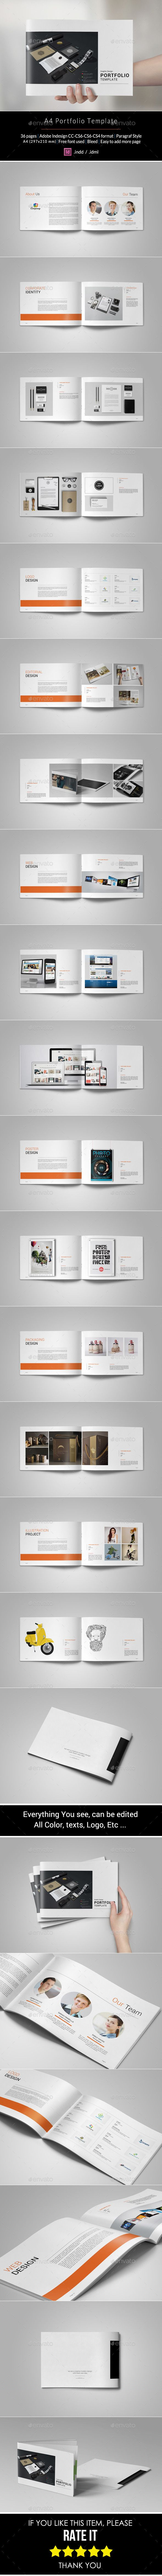 Portfolio Brochure Template (CS4, 11x8.2, 297x210, a4, branding, brochure, catalogs, catalogue, clean, corporate, creative, customizable, design, design portfolio, designer project, editable logo, elegant, illustration, interior, interior design, minimal, minimalistic, modern, modern catalogue, packaging template, photography template, portfolio template, print ready, product, simple, template)